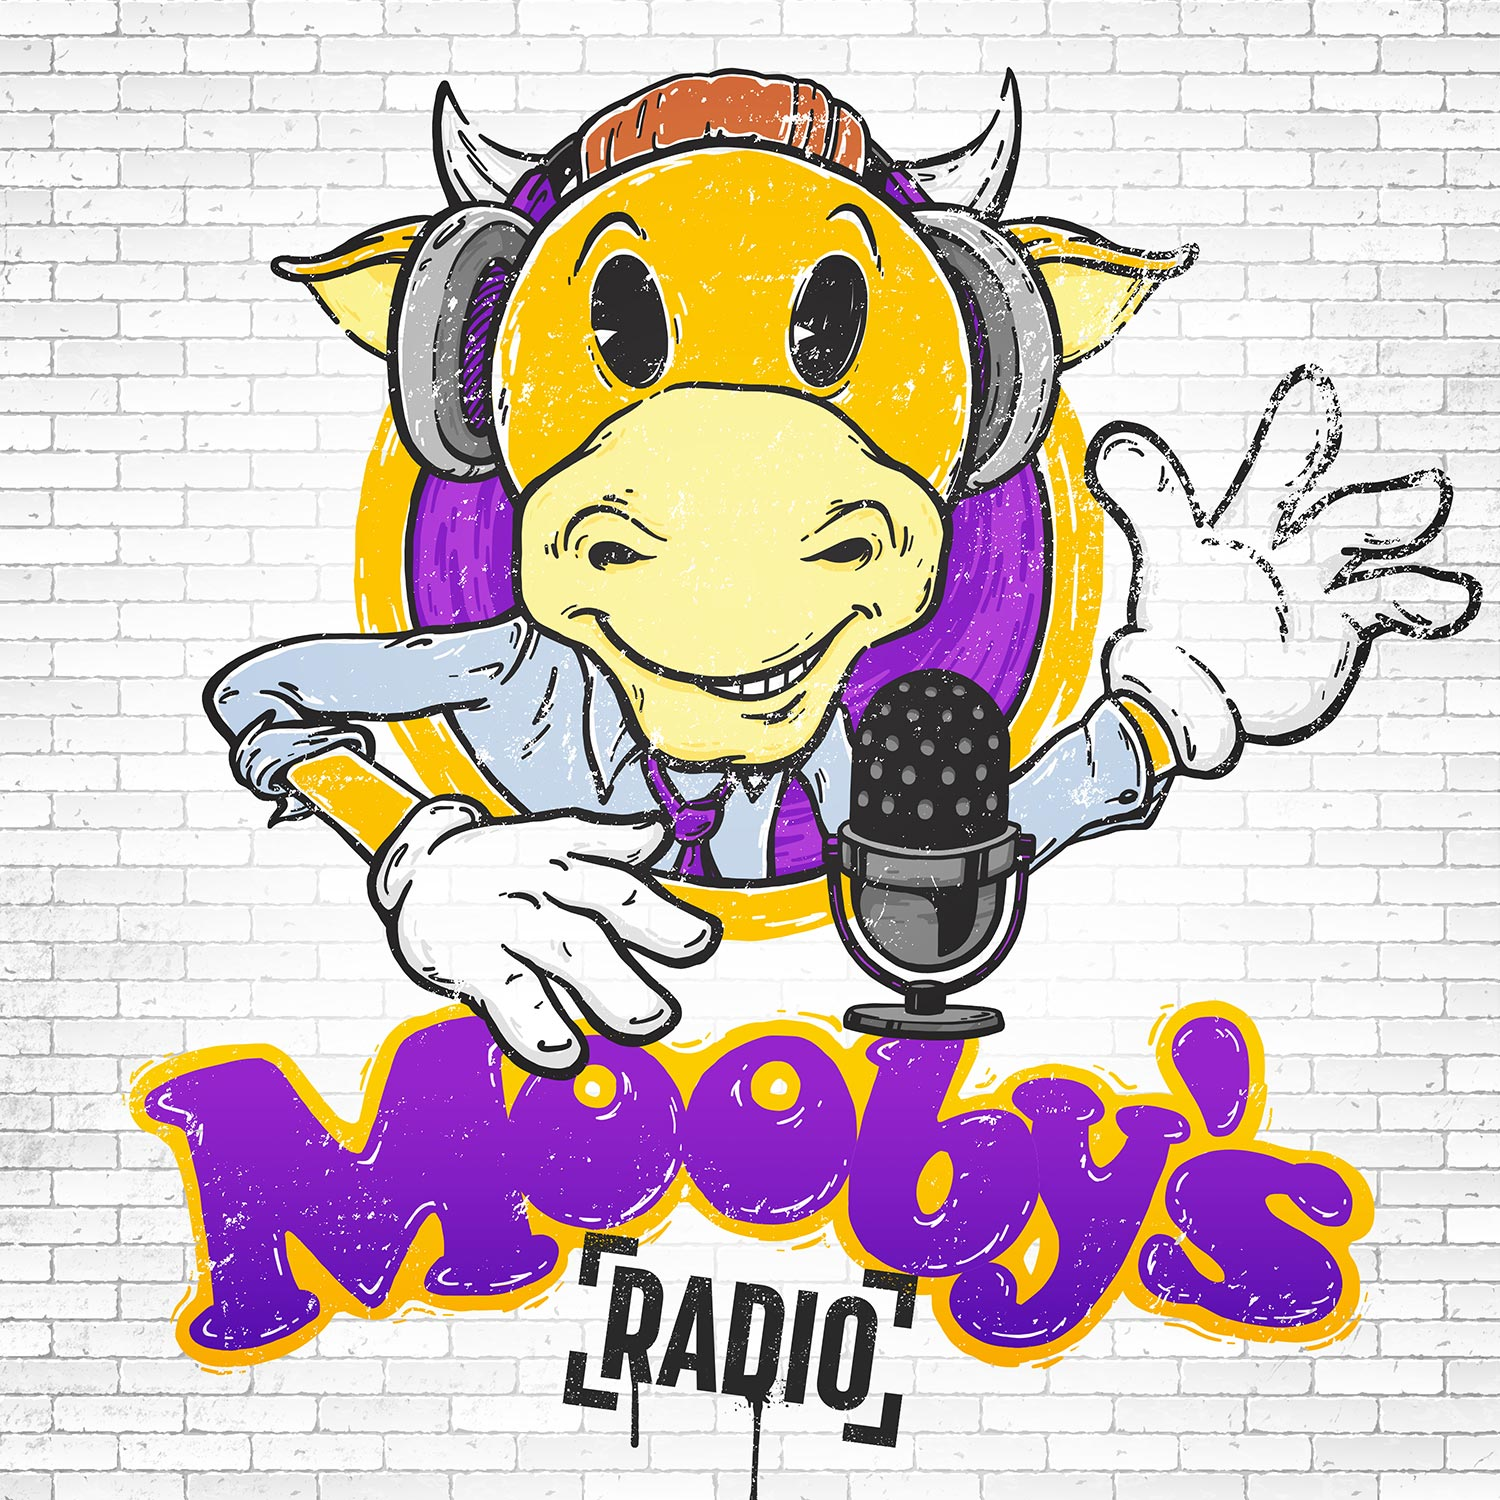 Moobys-Podcasts-Submit.jpg